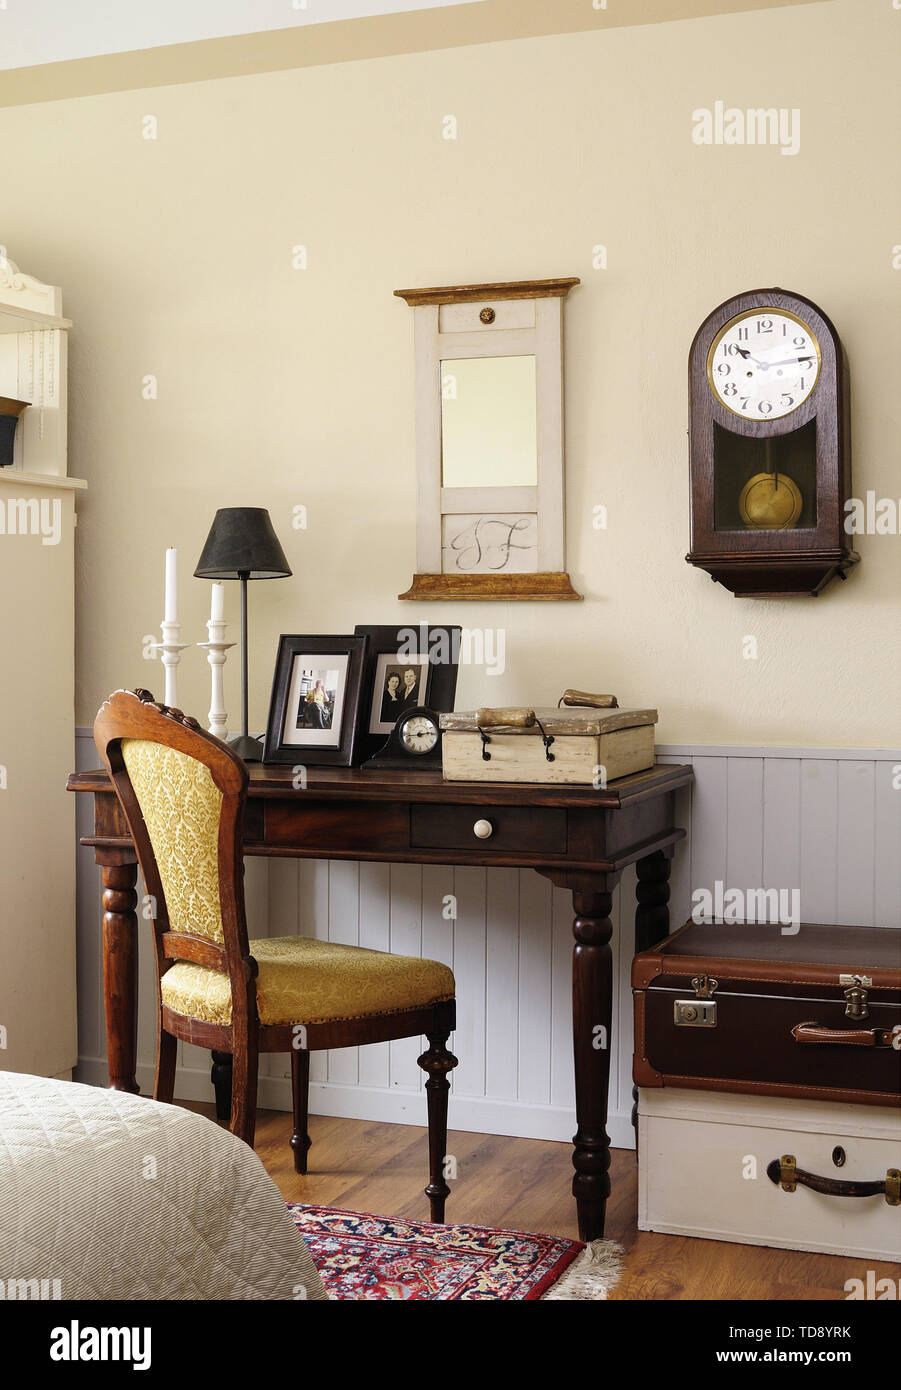 Framed family pictures and table lamp on brown side table in bedroom   UK & IRISH USE ONLY - Stock Image